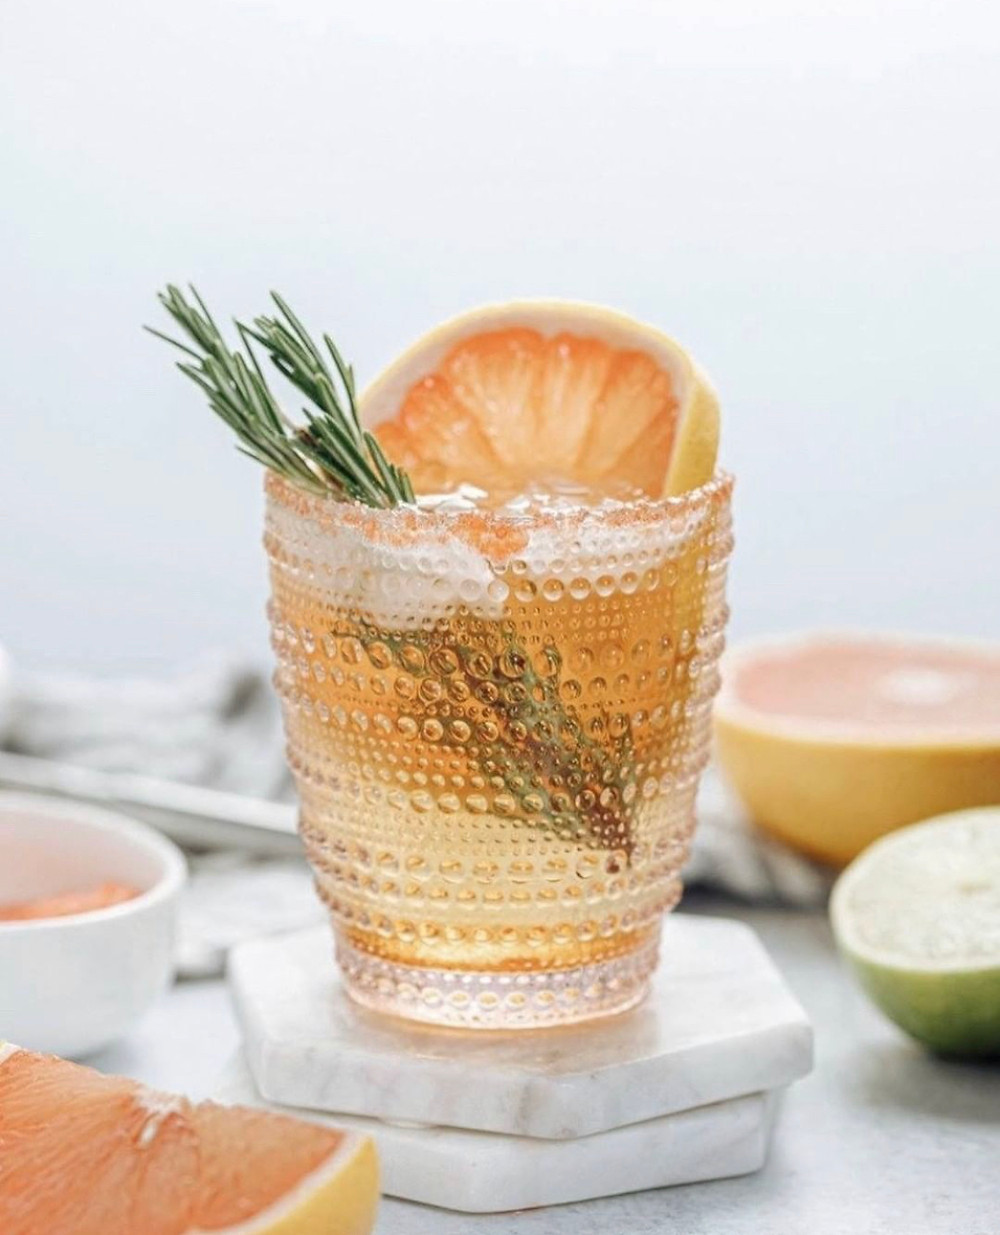 Margarita in a hobnob glass garnished with rosemary and grapefruit, cocktails with sparkling wine, tequila cocktails, easy cocktail recipes